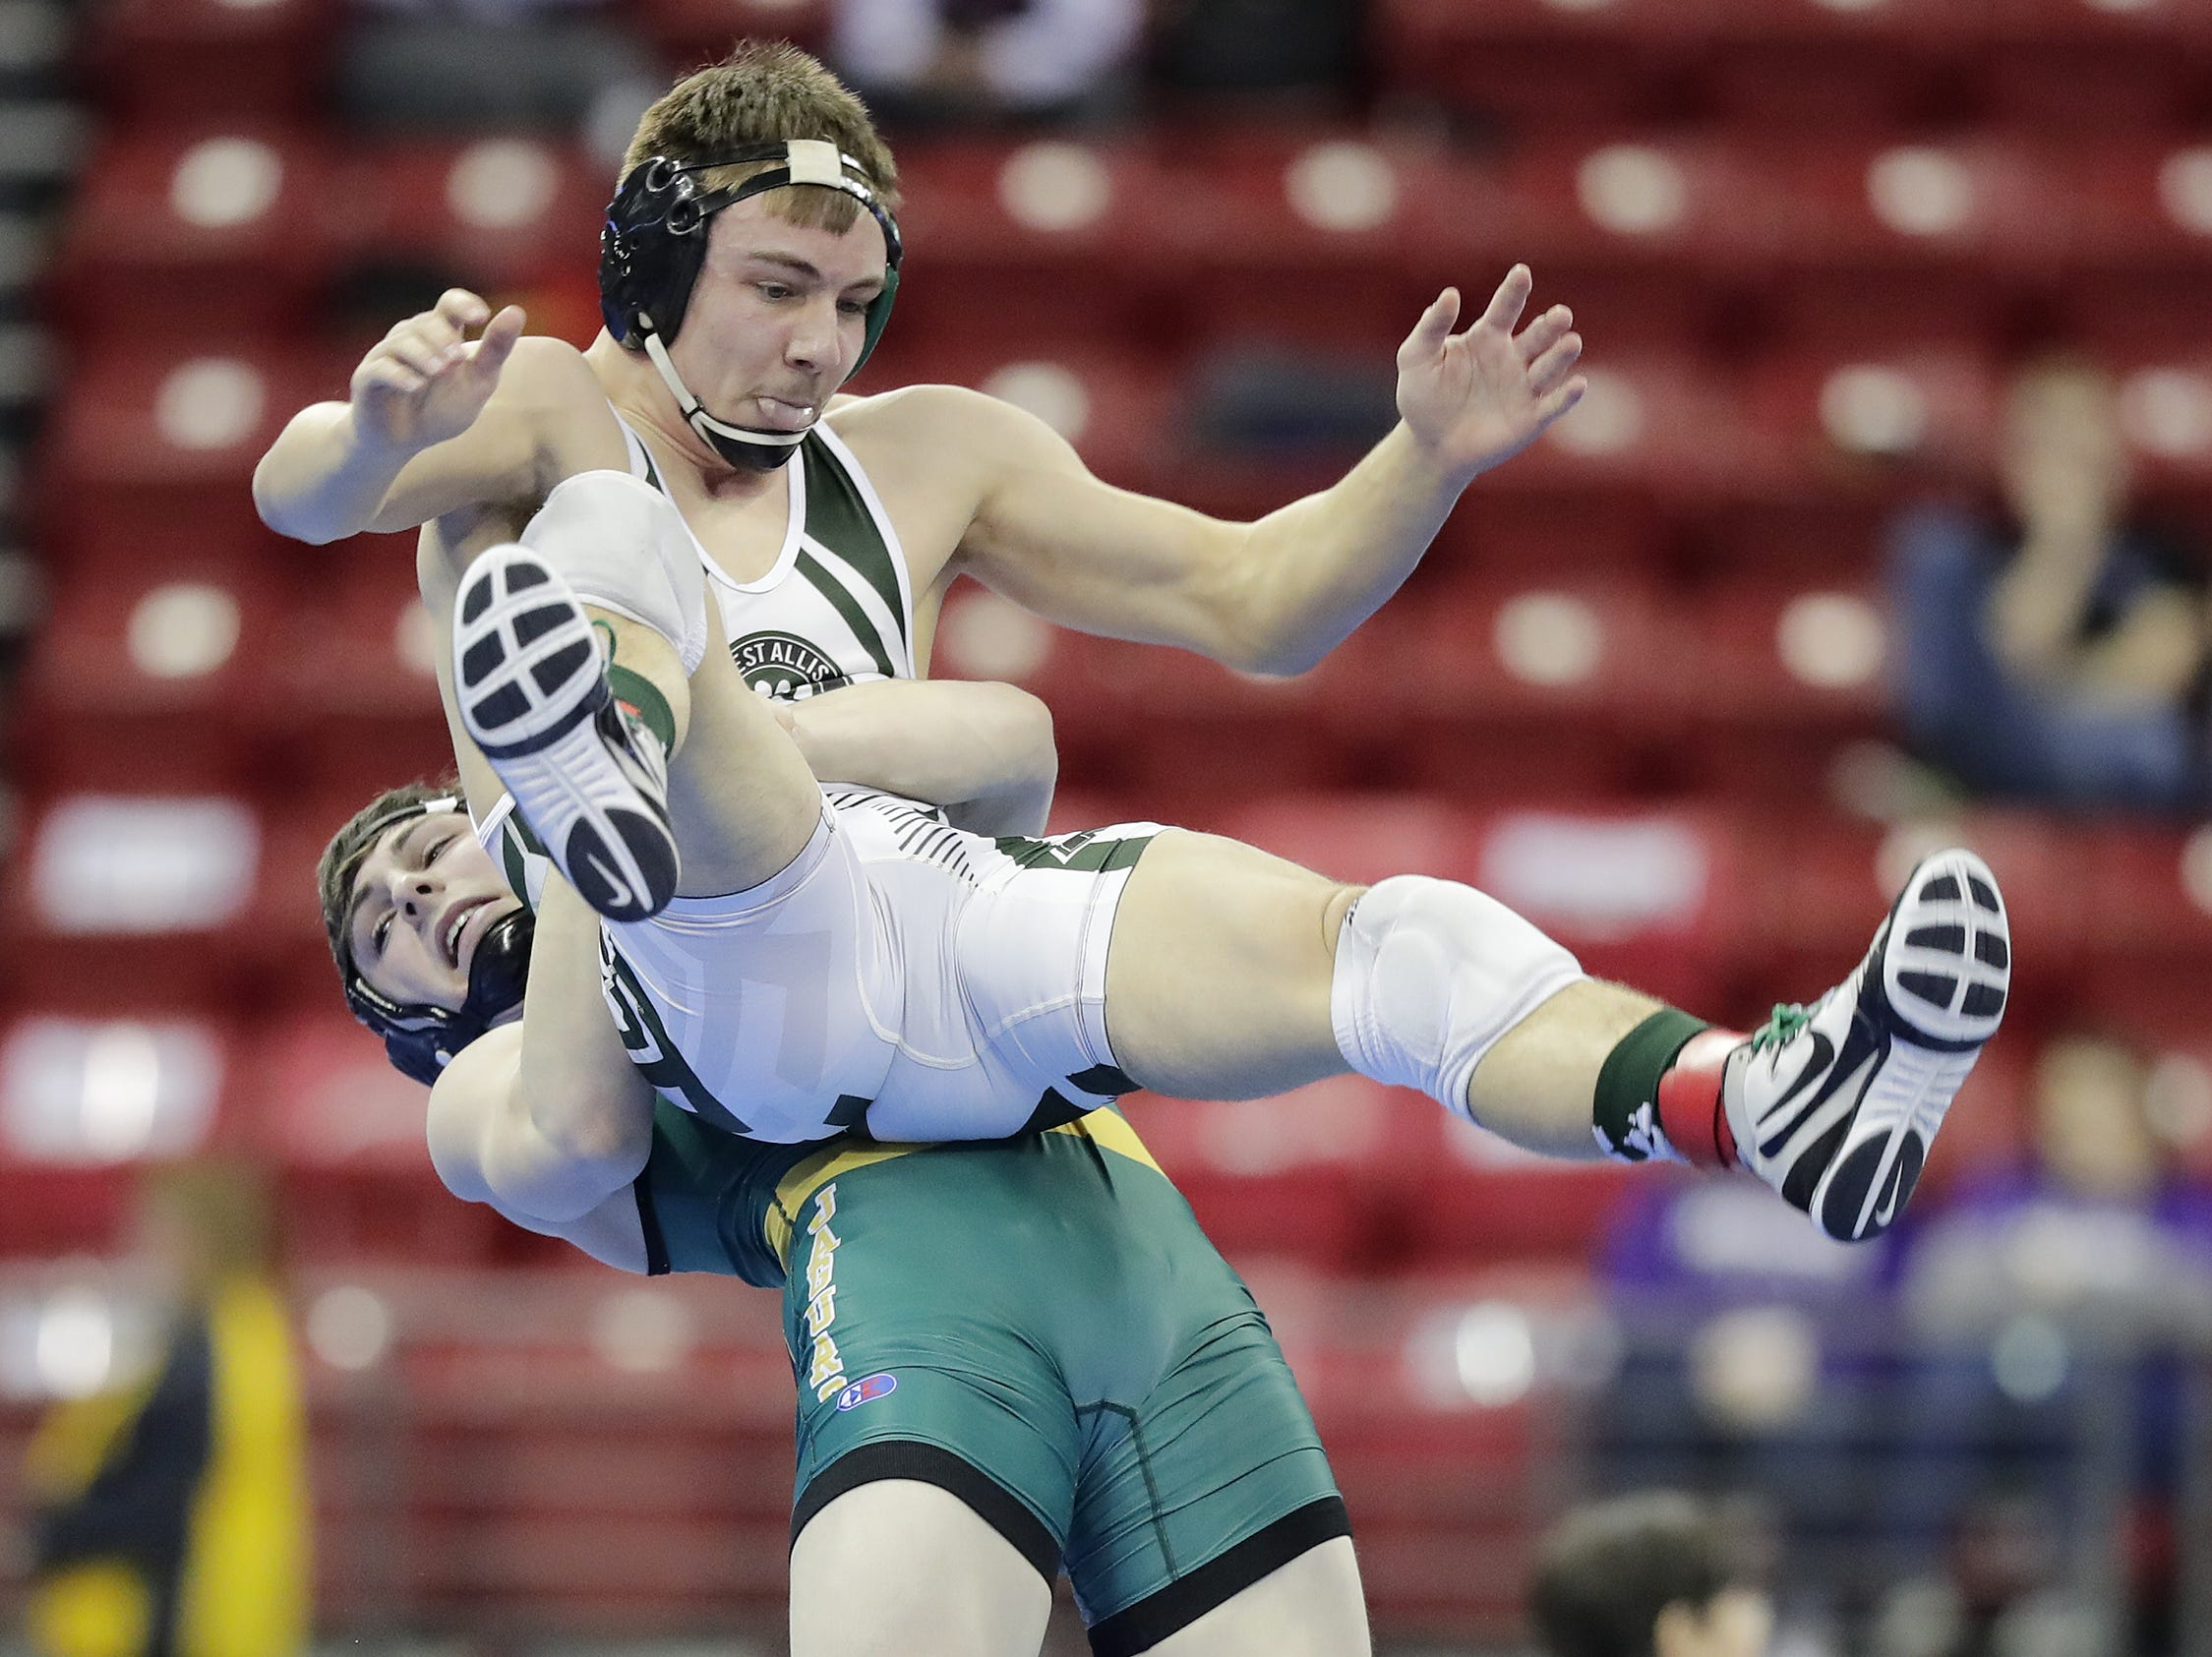 Ashwaubenon's Connor Ramage takes down West Allis/Nathan Hale's Cody Kibler in a Division 1 160-pound preliminary match at the WIAA state individual wrestling tournament at the Kohl Center on Thursday, February 21, 2019 in Madison, Wis. Adam Wesley/USA TODAY NETWORK-Wisconsin